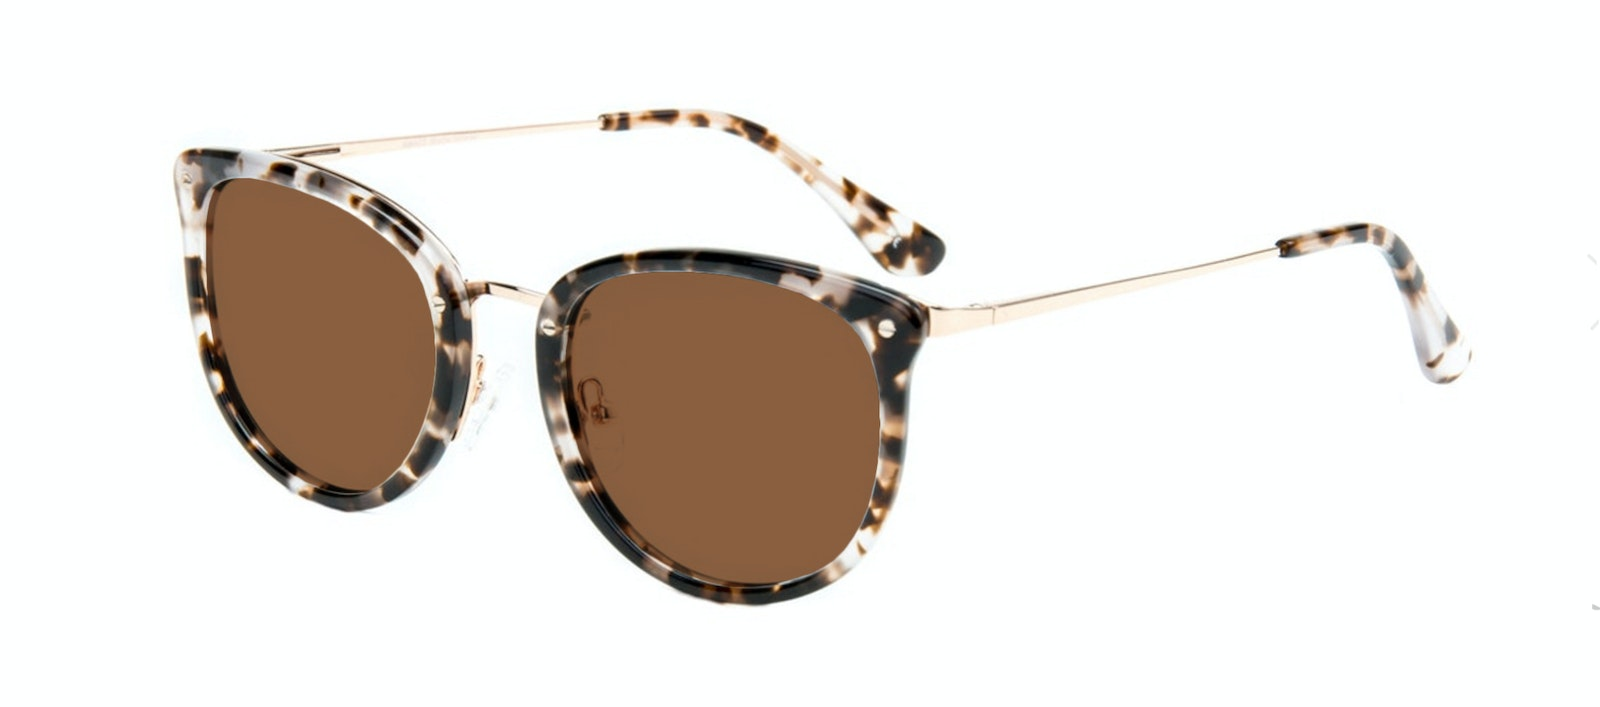 Affordable Fashion Glasses Square Round Sunglasses Women Amaze Mocha Tortoise Tilt